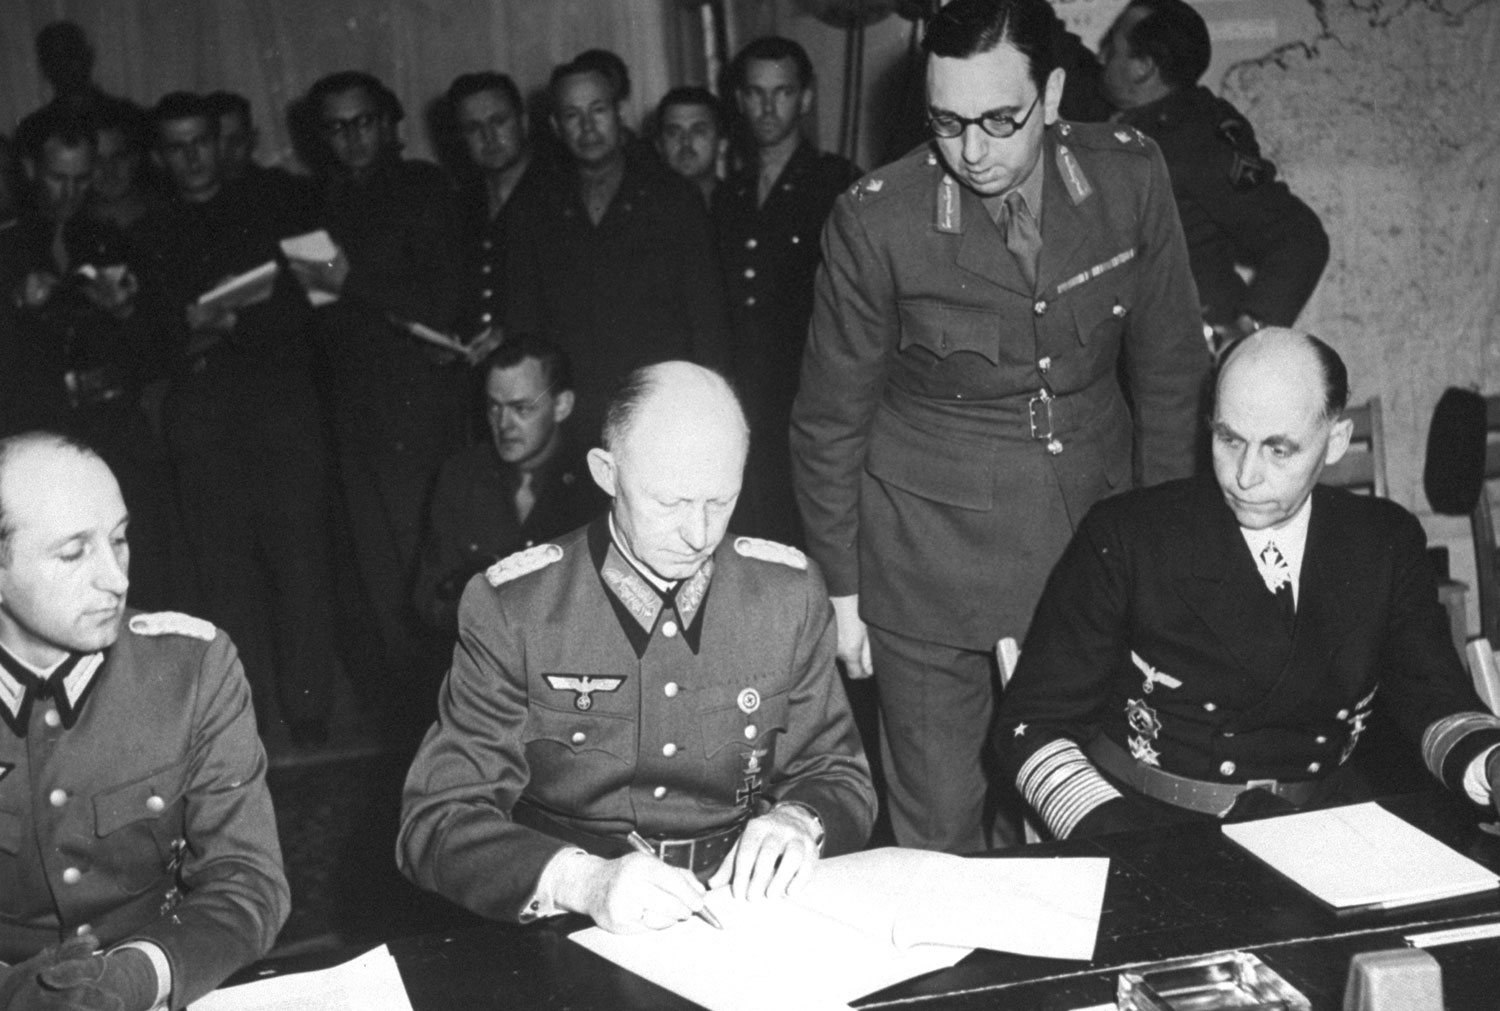 ColGen Alfred Jodl signing the documents of Germany's surrender, Reims, France, 7 May 1945. (US Army Signal Corps photo)